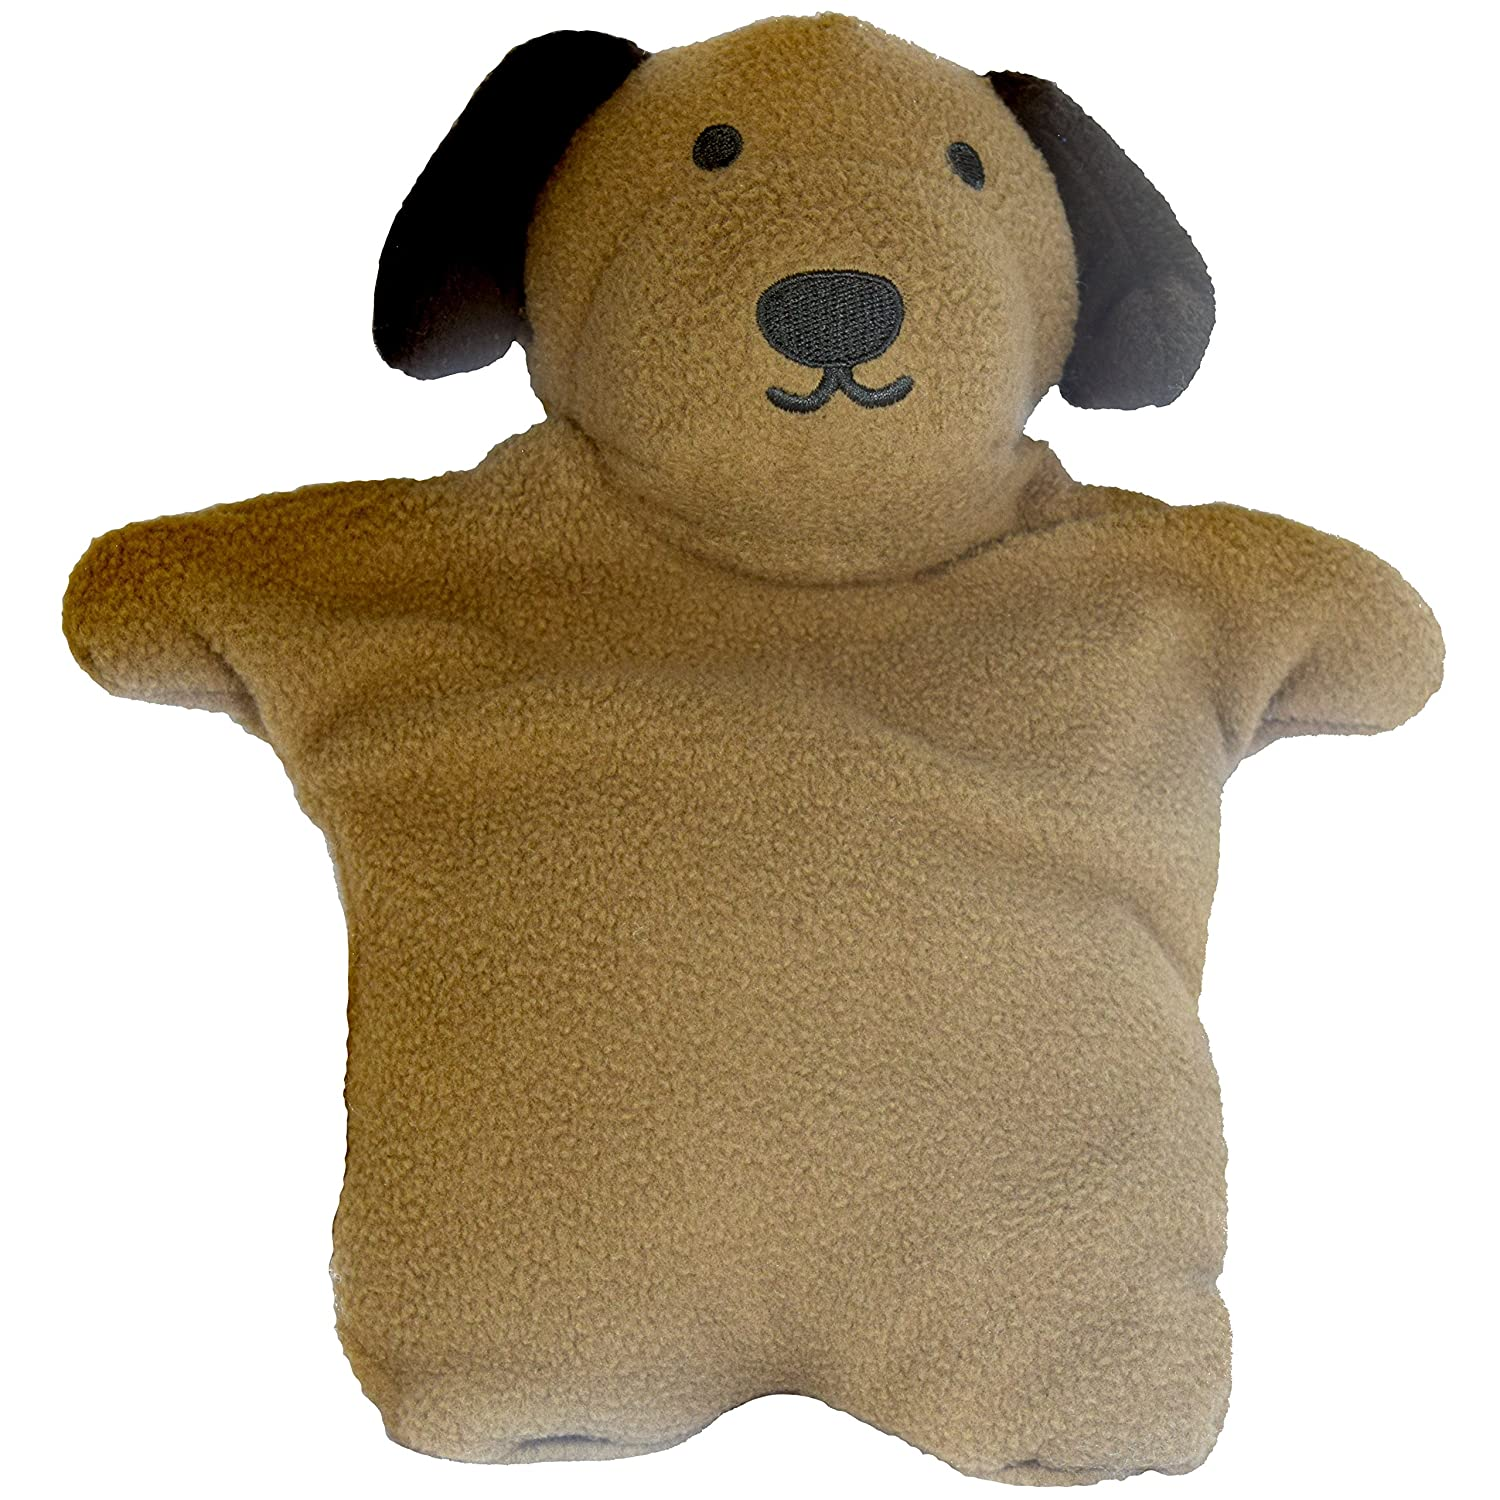 Yogibo Aroma Mate - Lavender Aromatherapy Heating Pad & Ice Pack - Soothes Aches & Pains - Cute & Cuddly Stuffed Animal - Microwavable & Freezable - Removable & Machine Washable Outer Cover - Dog